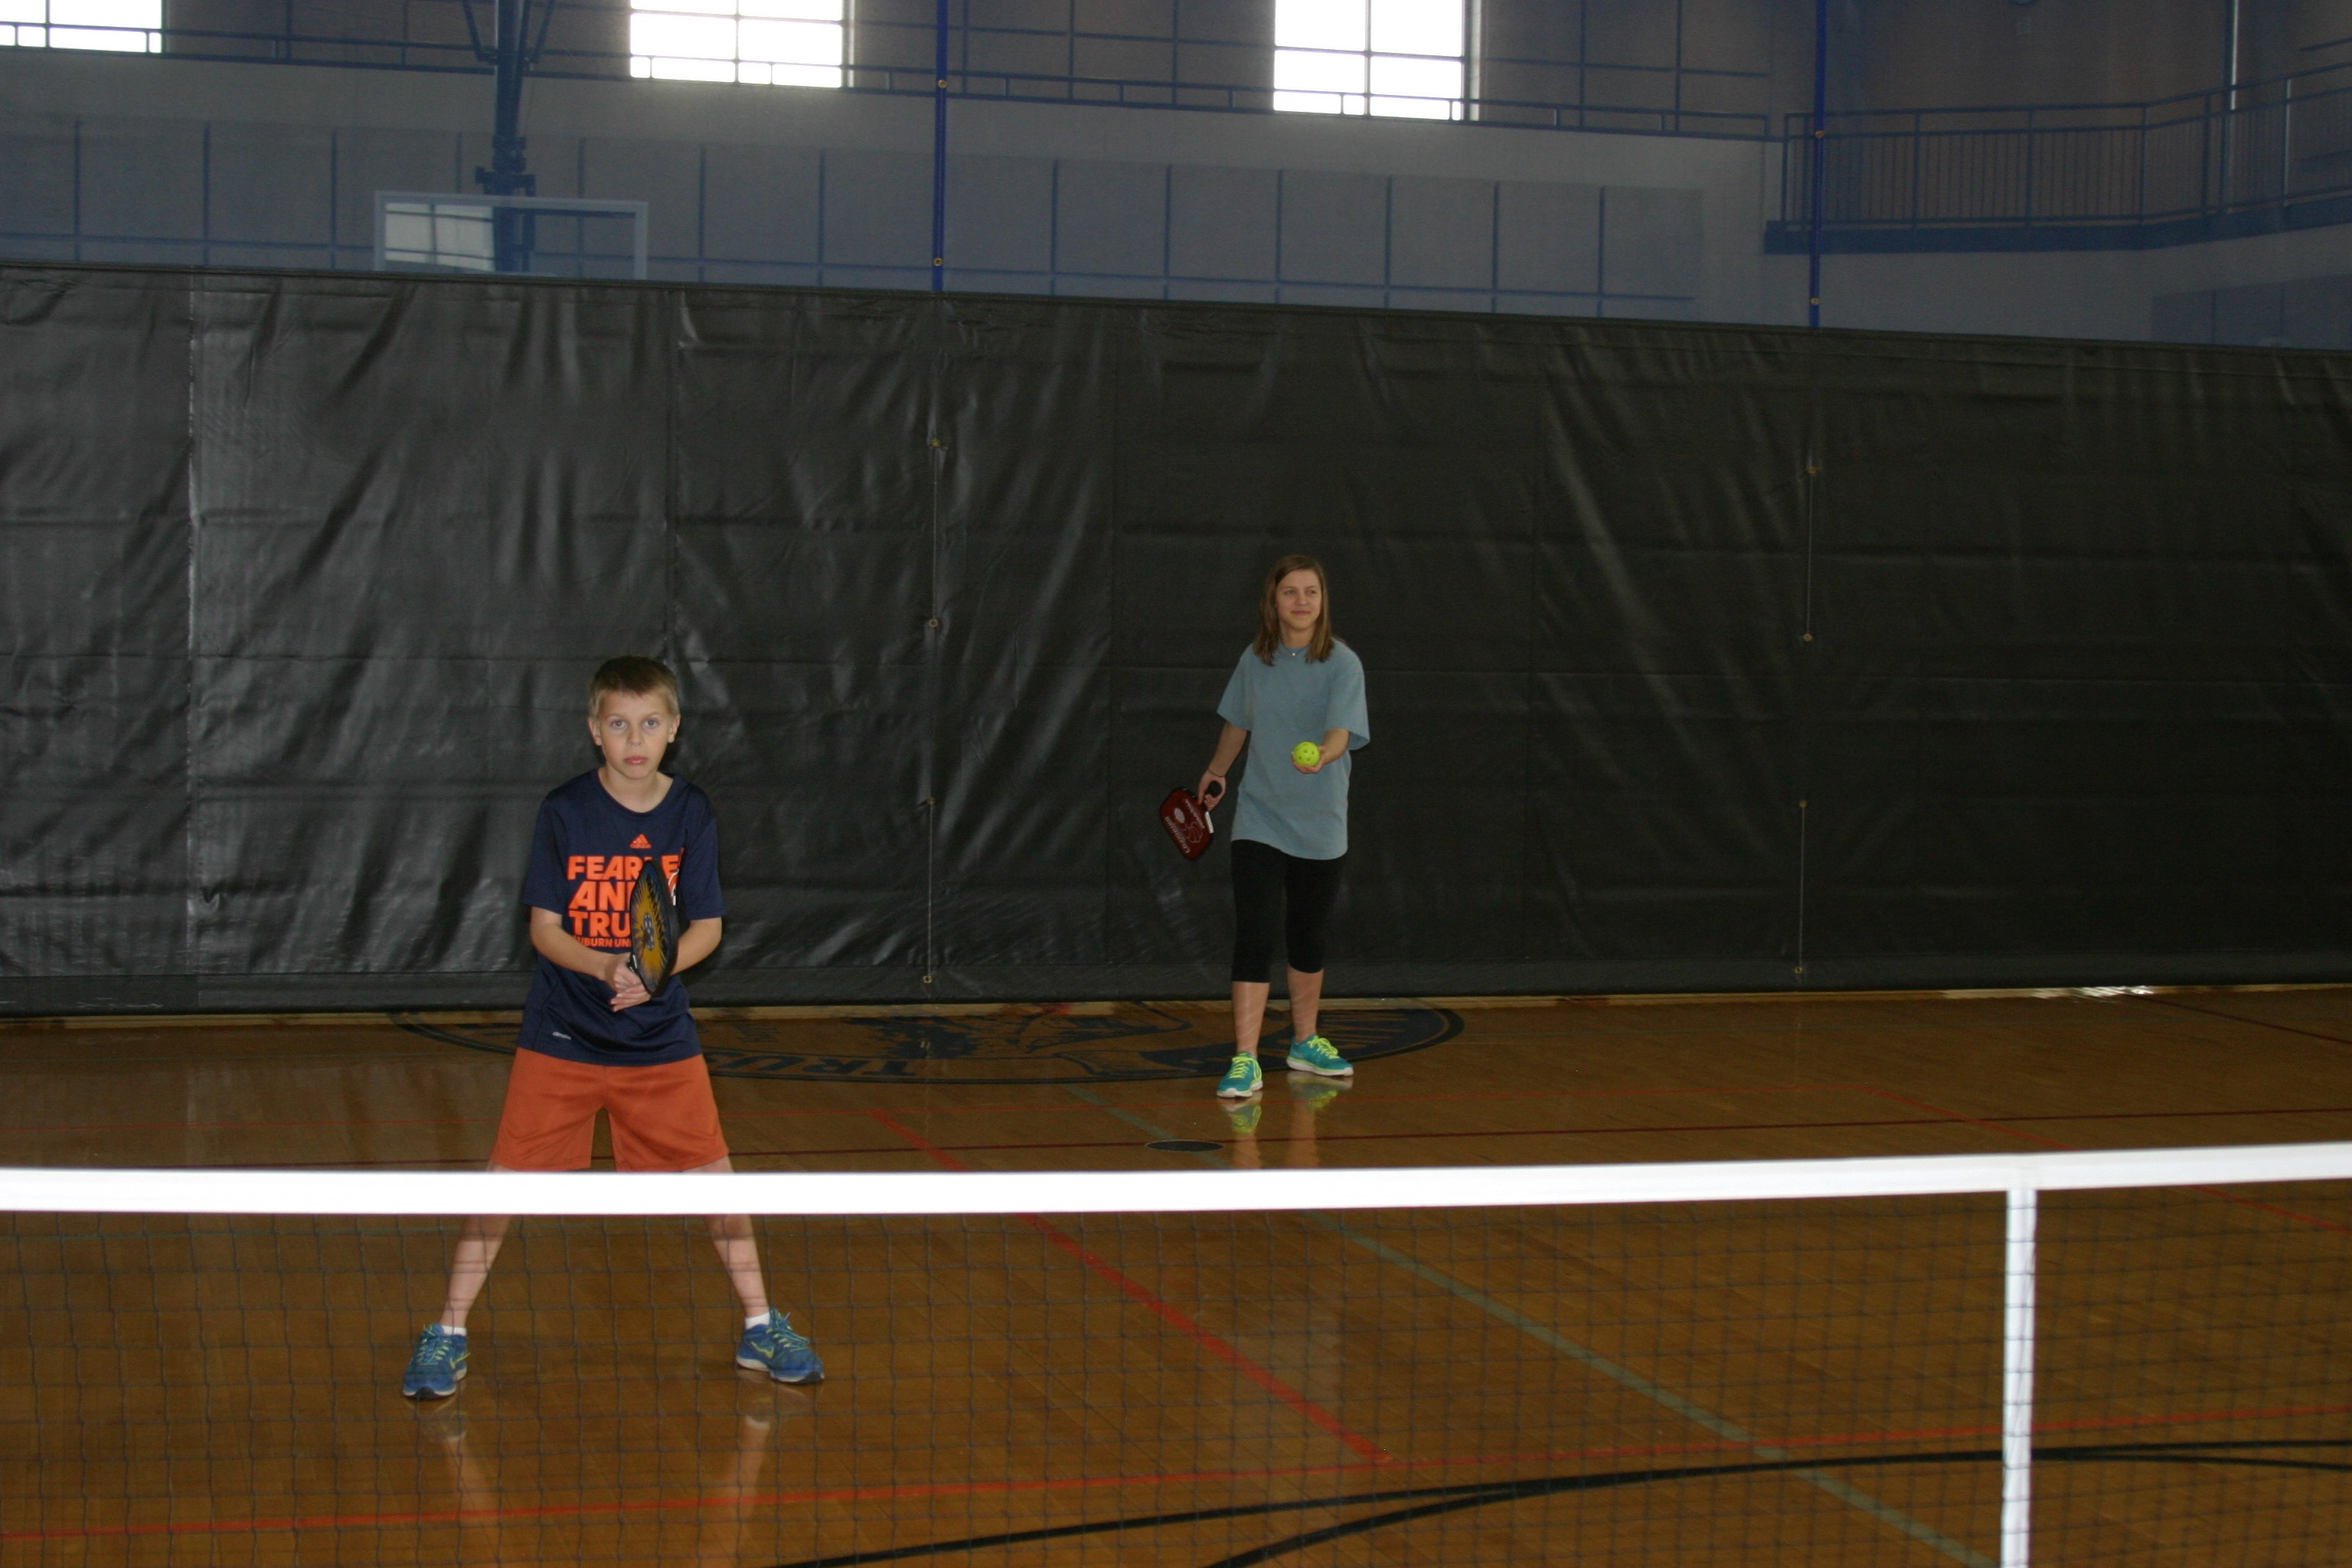 brother and sister playing pickleball in trussville alabama, alabama pickleball, trussville pickleball, birmingham pickleball